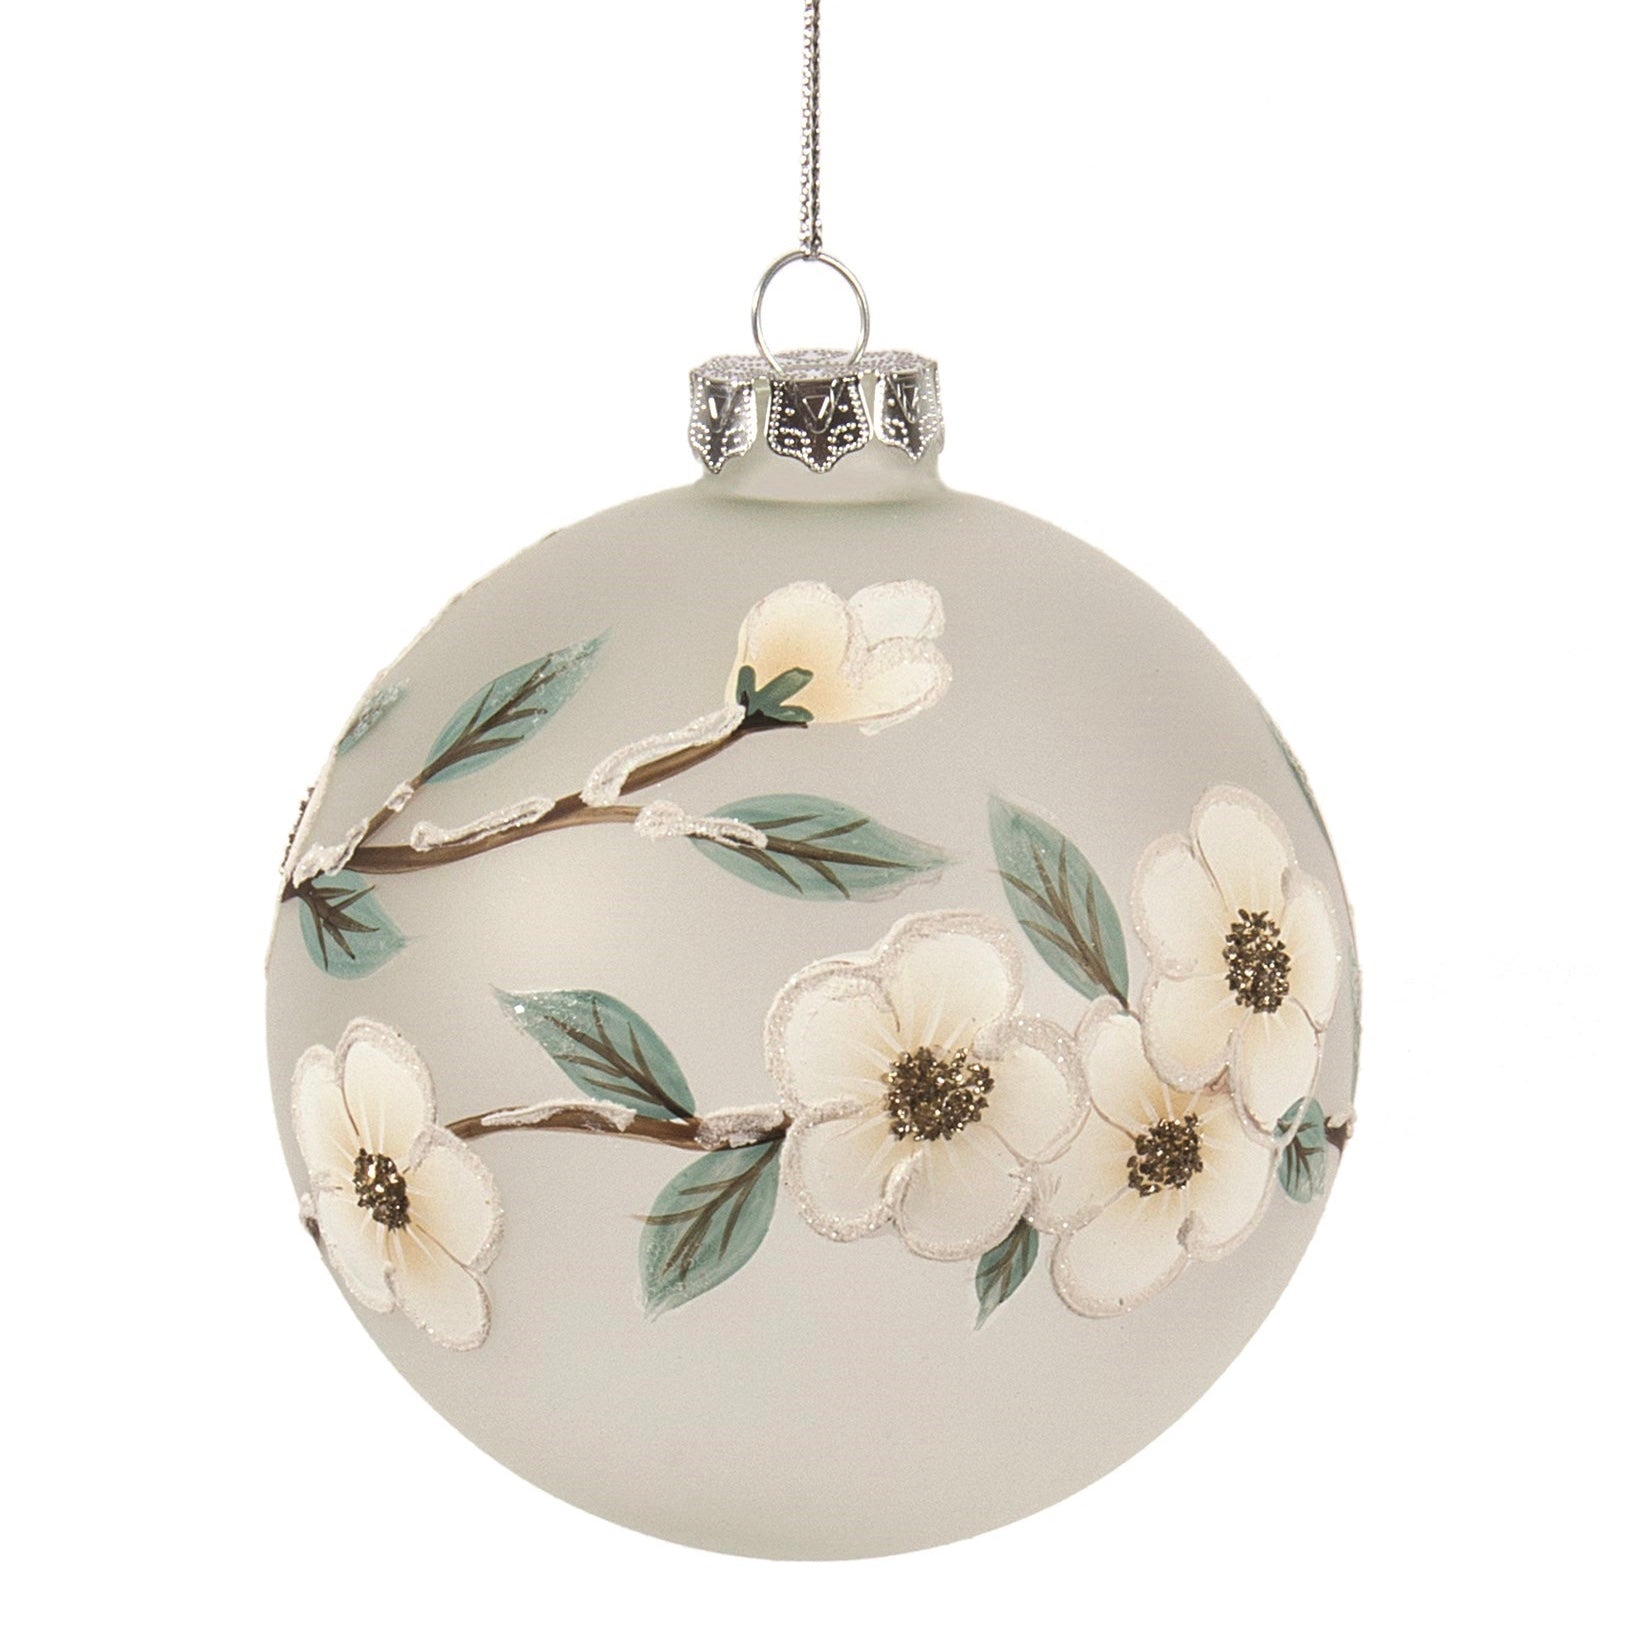 Frosted Glass Ball Ornament with Dogwood Flowers | Putti Christmas